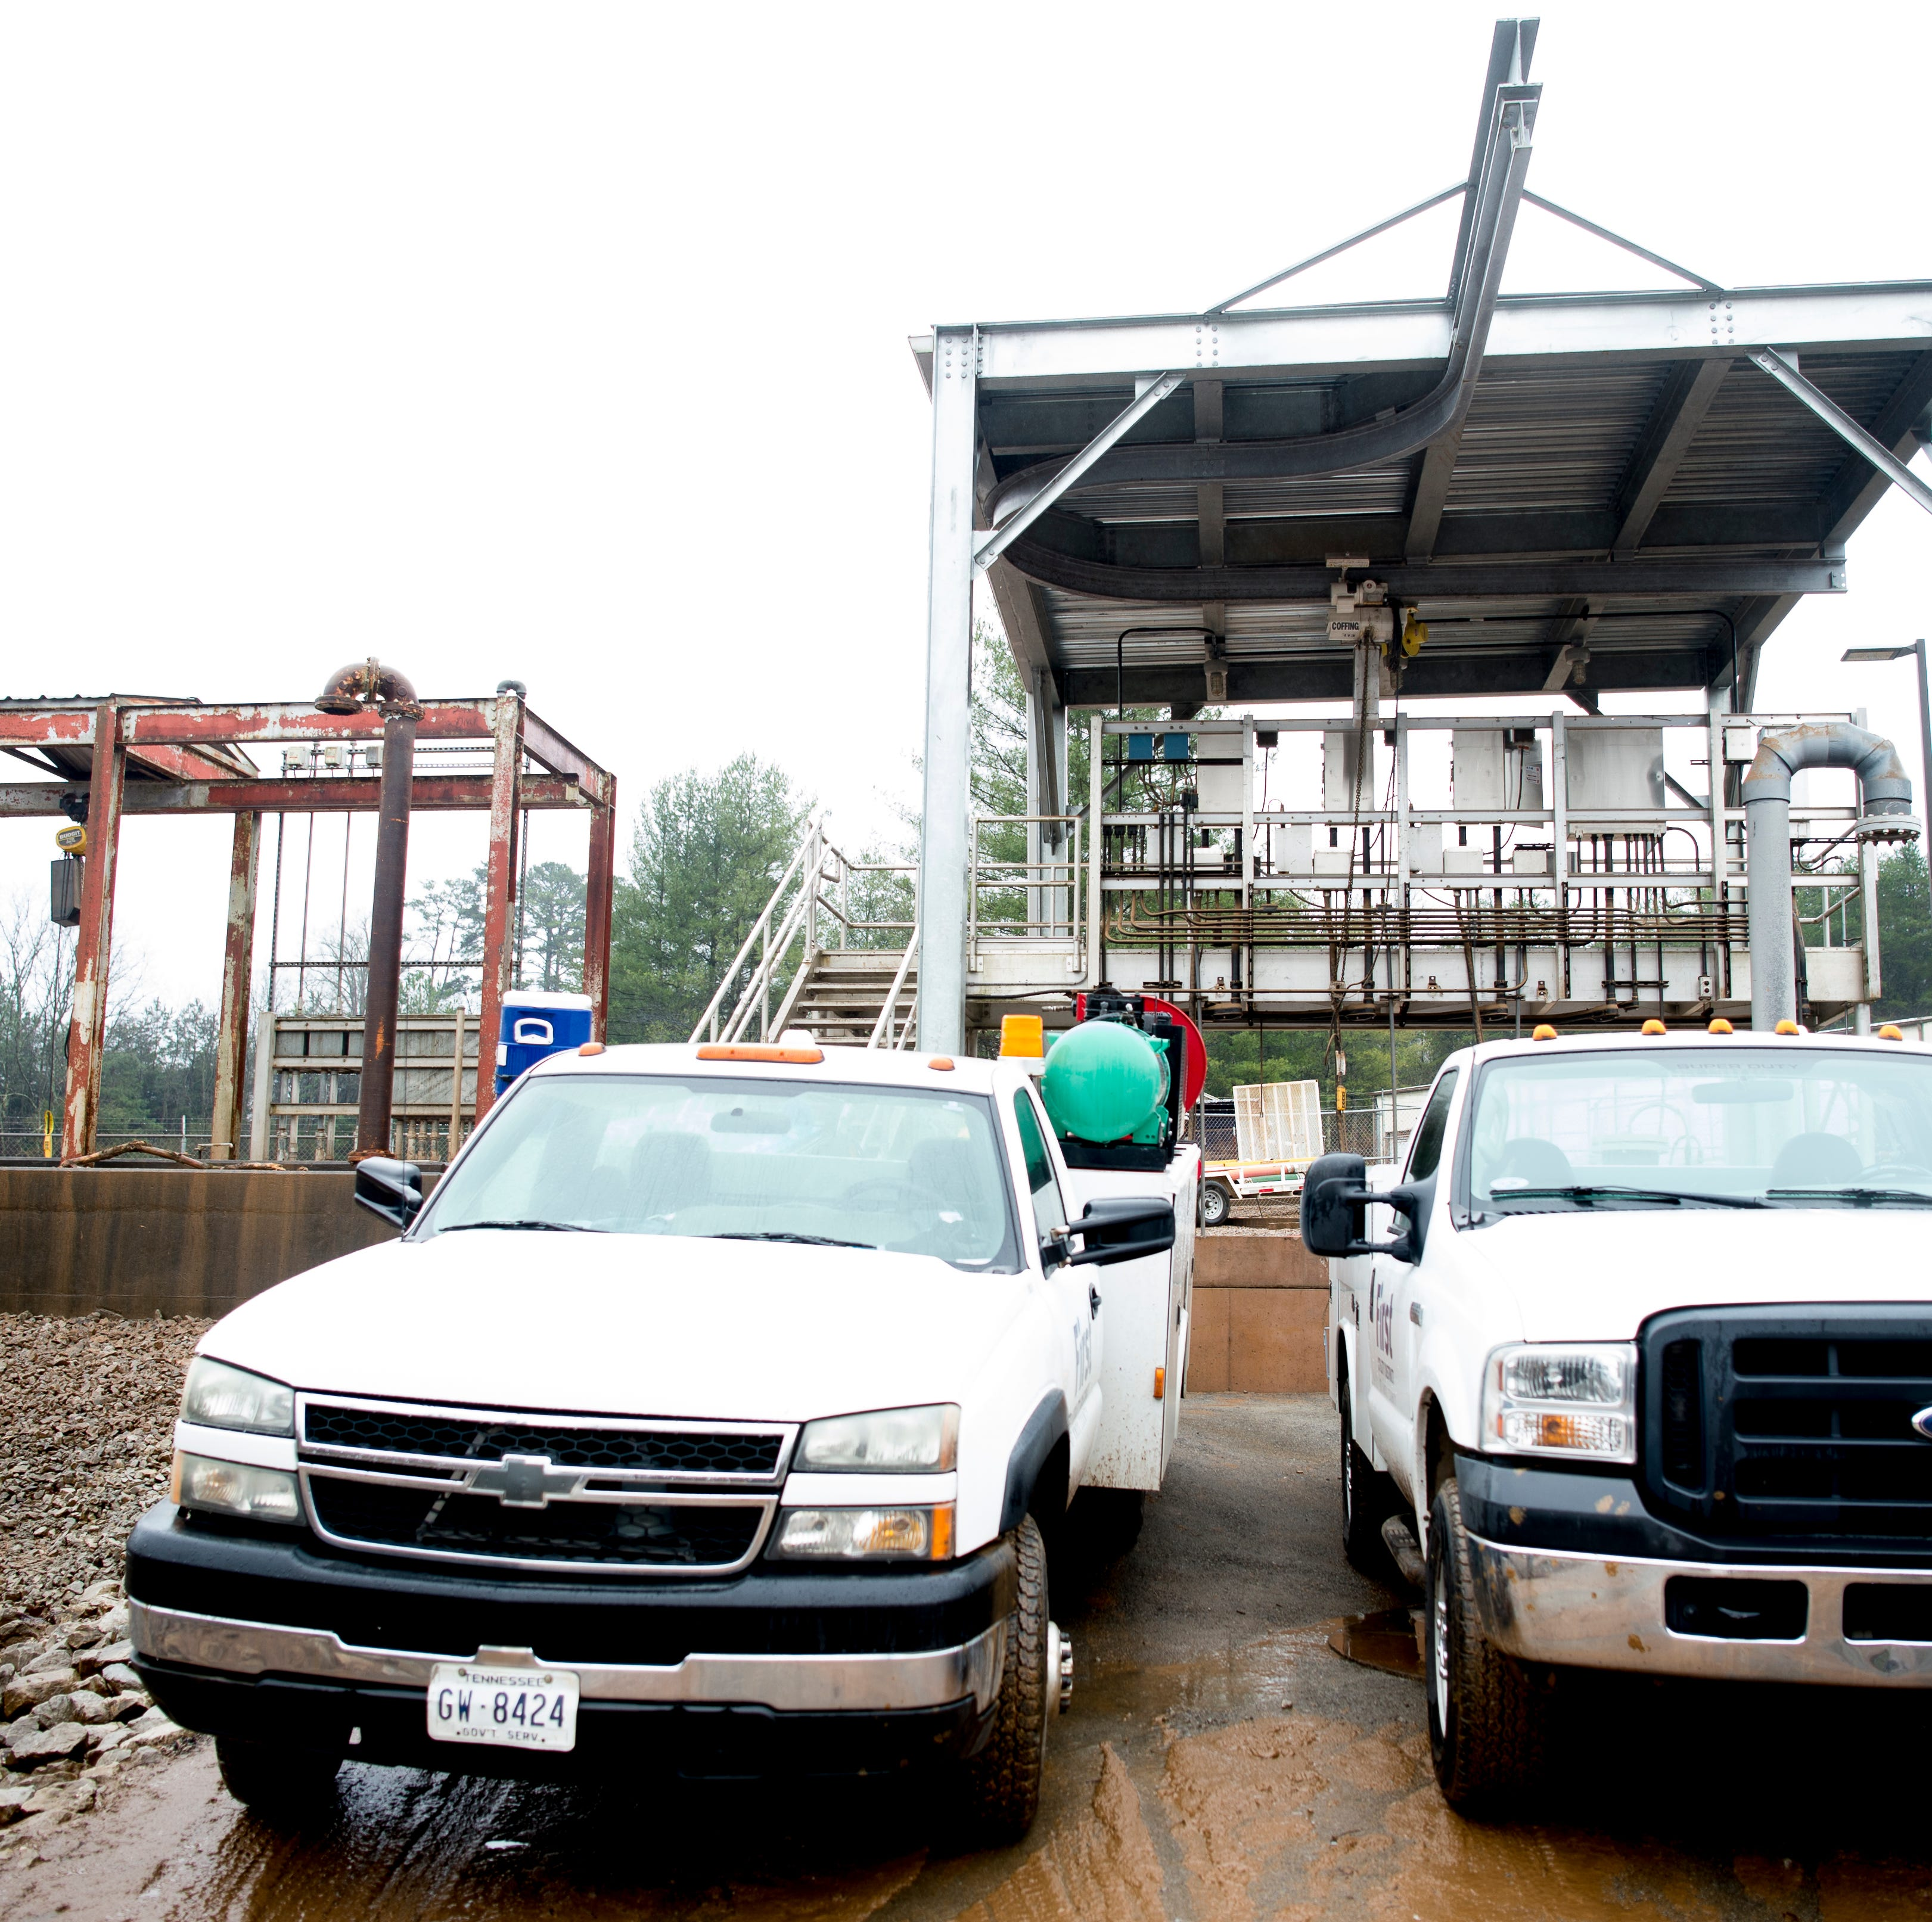 Knox flooding: First Utility District damages hit millions, may qualify county for FEMA